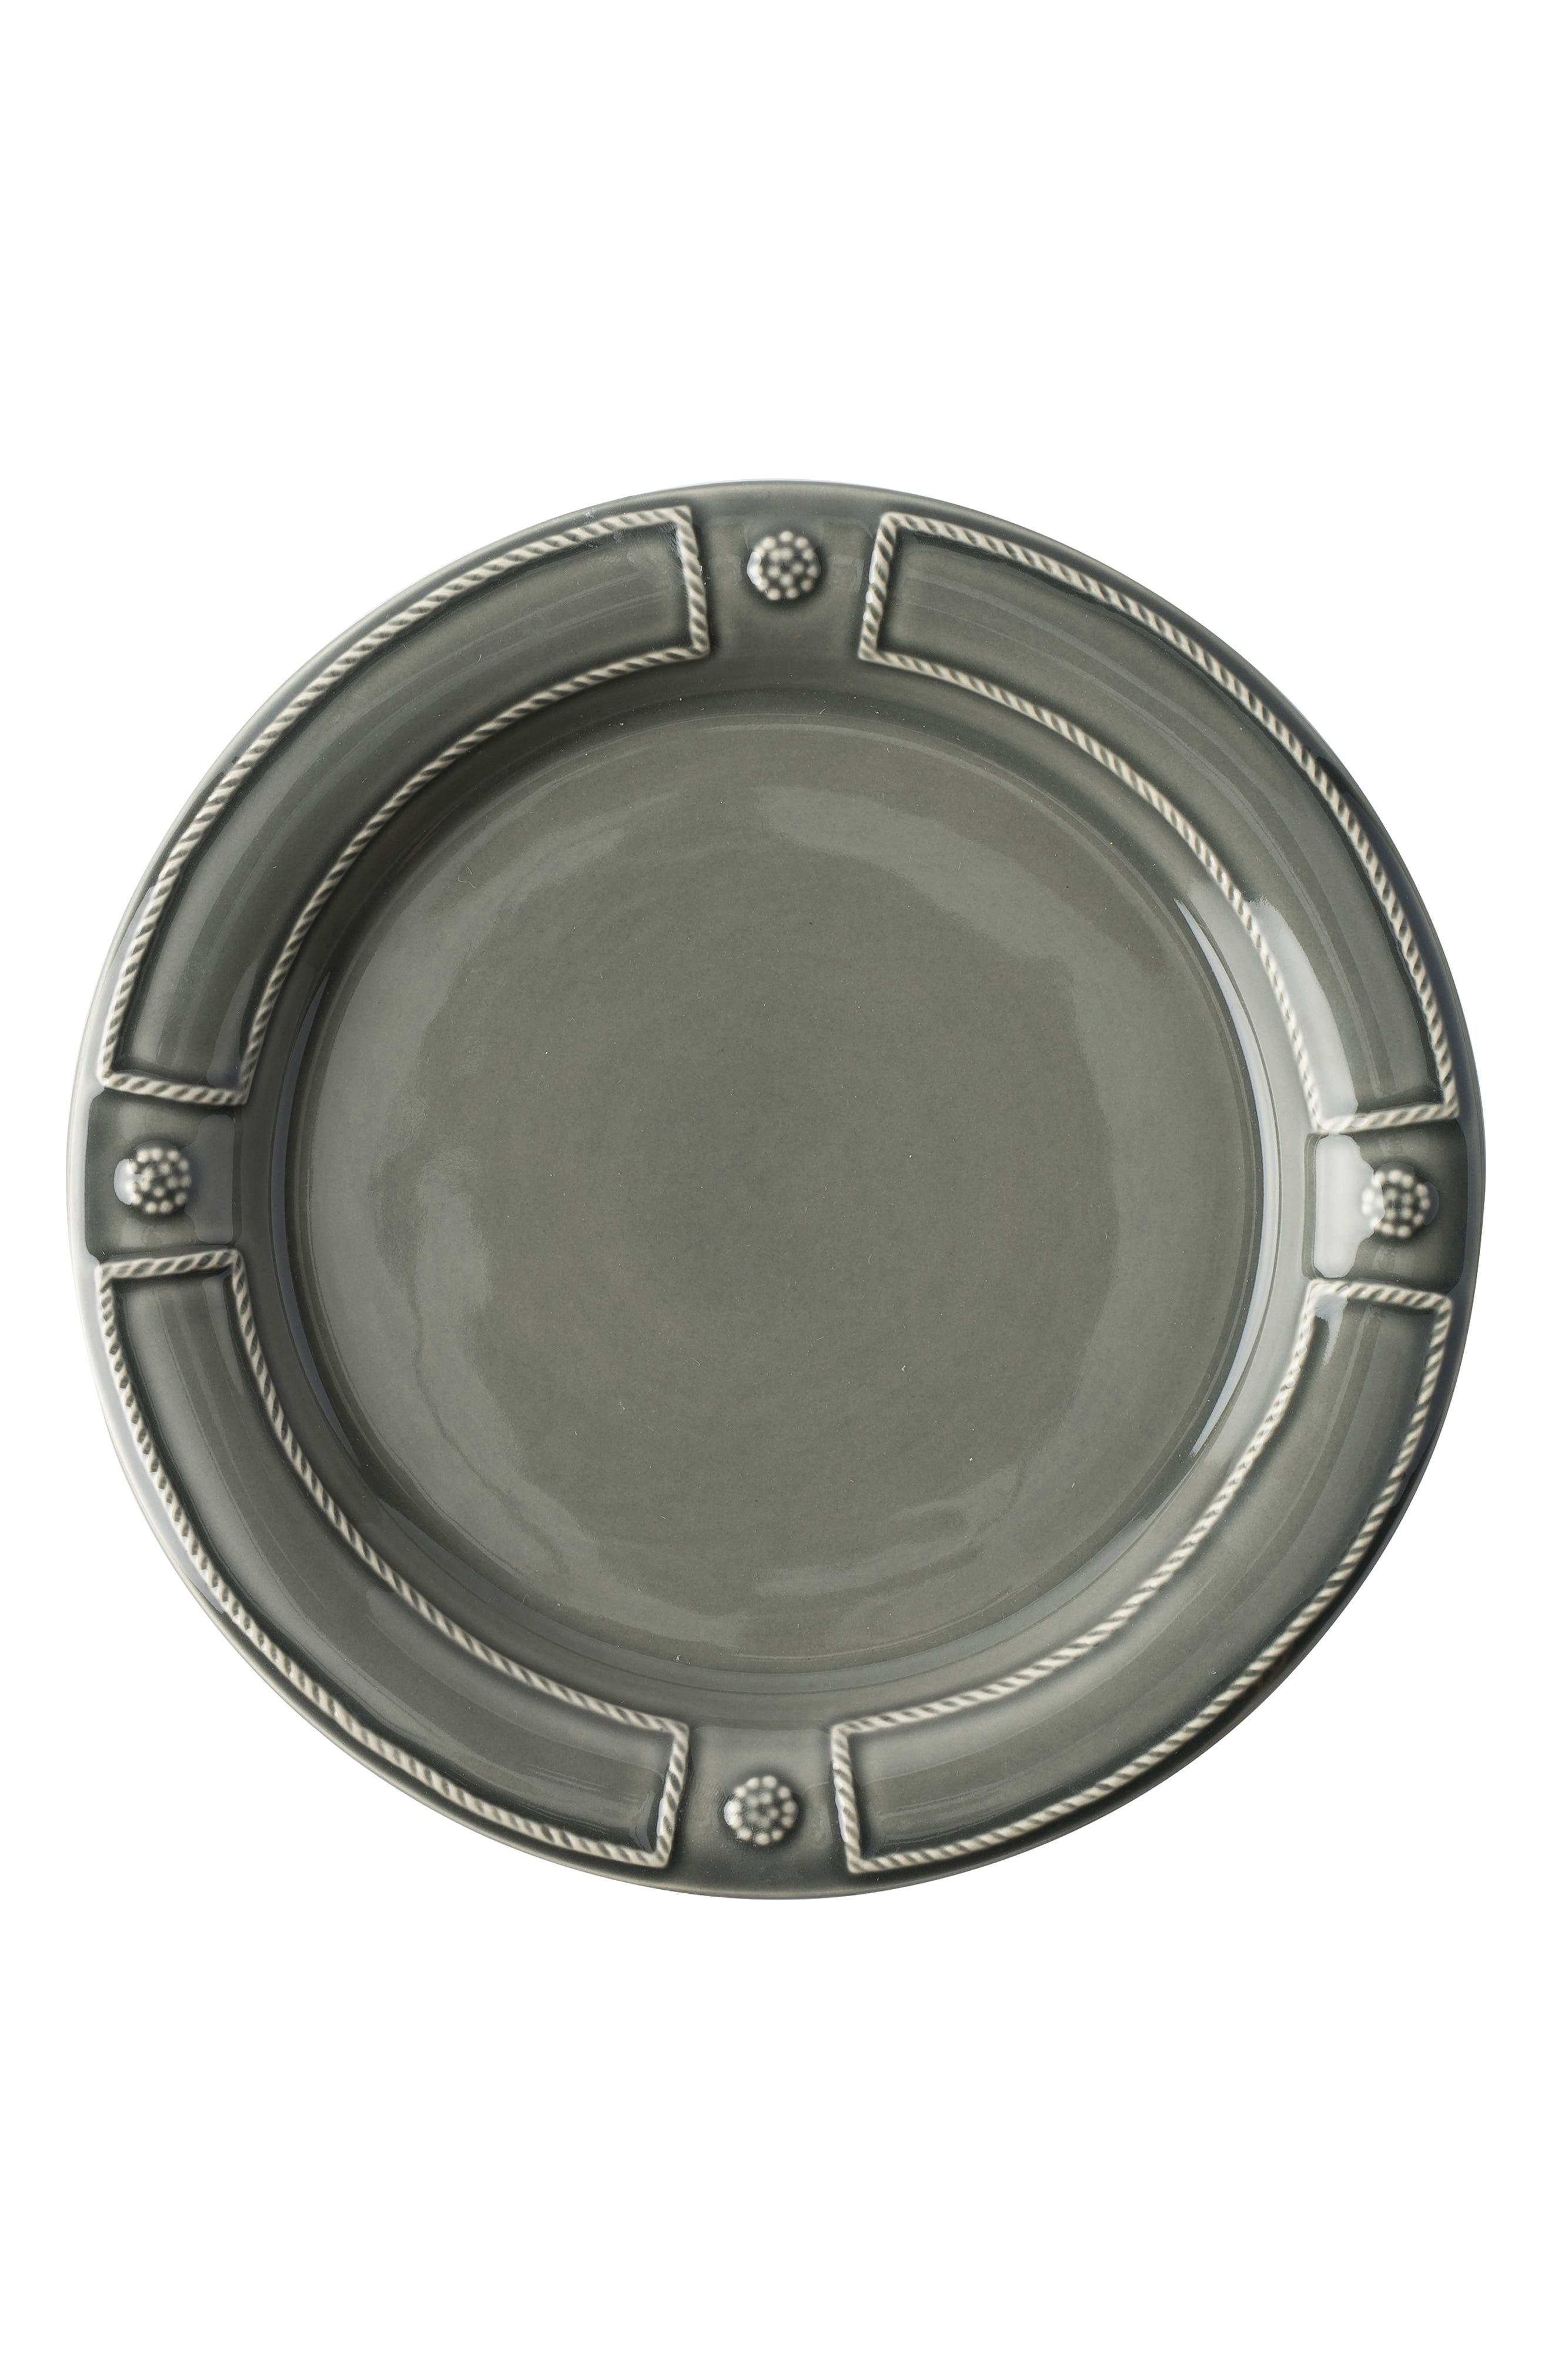 Berry & Thread French Panel Ceramic Salad Plate,                             Main thumbnail 1, color,                             STONE GREY